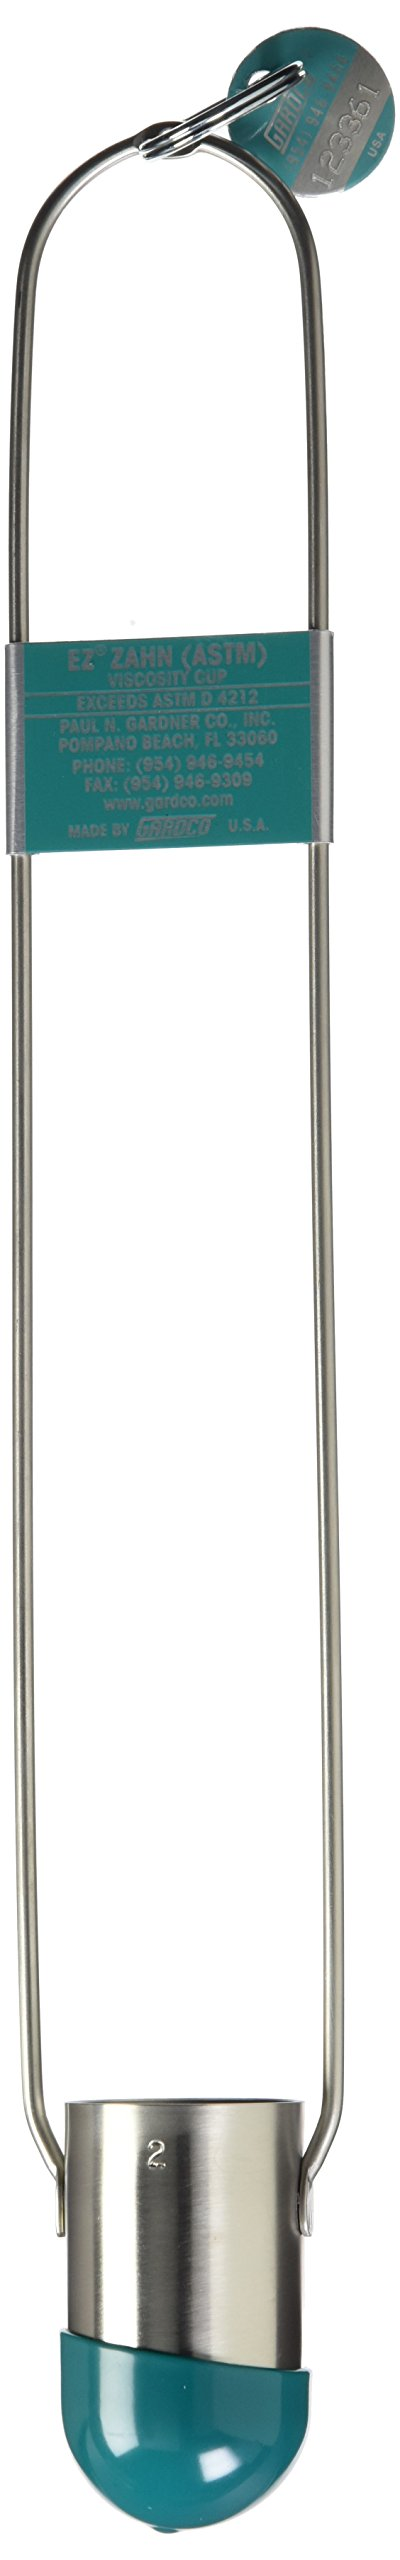 Gardco EZ2 Stainless Steel Calibrated EZ Viscosity Cup for Viscometer, Size No. 2 by Gardco